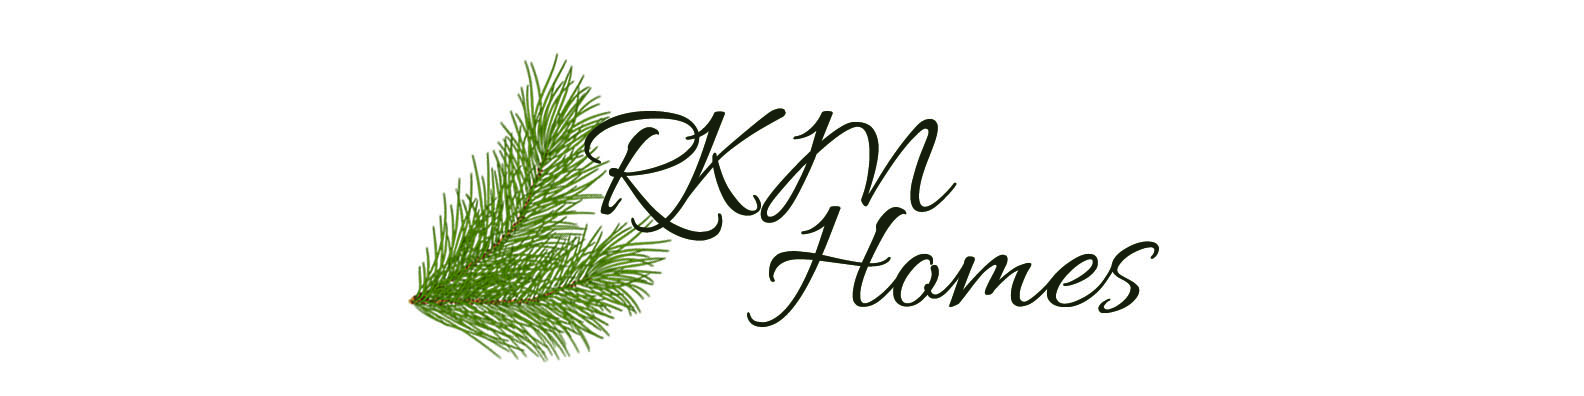 RKM Homes Logo with tree